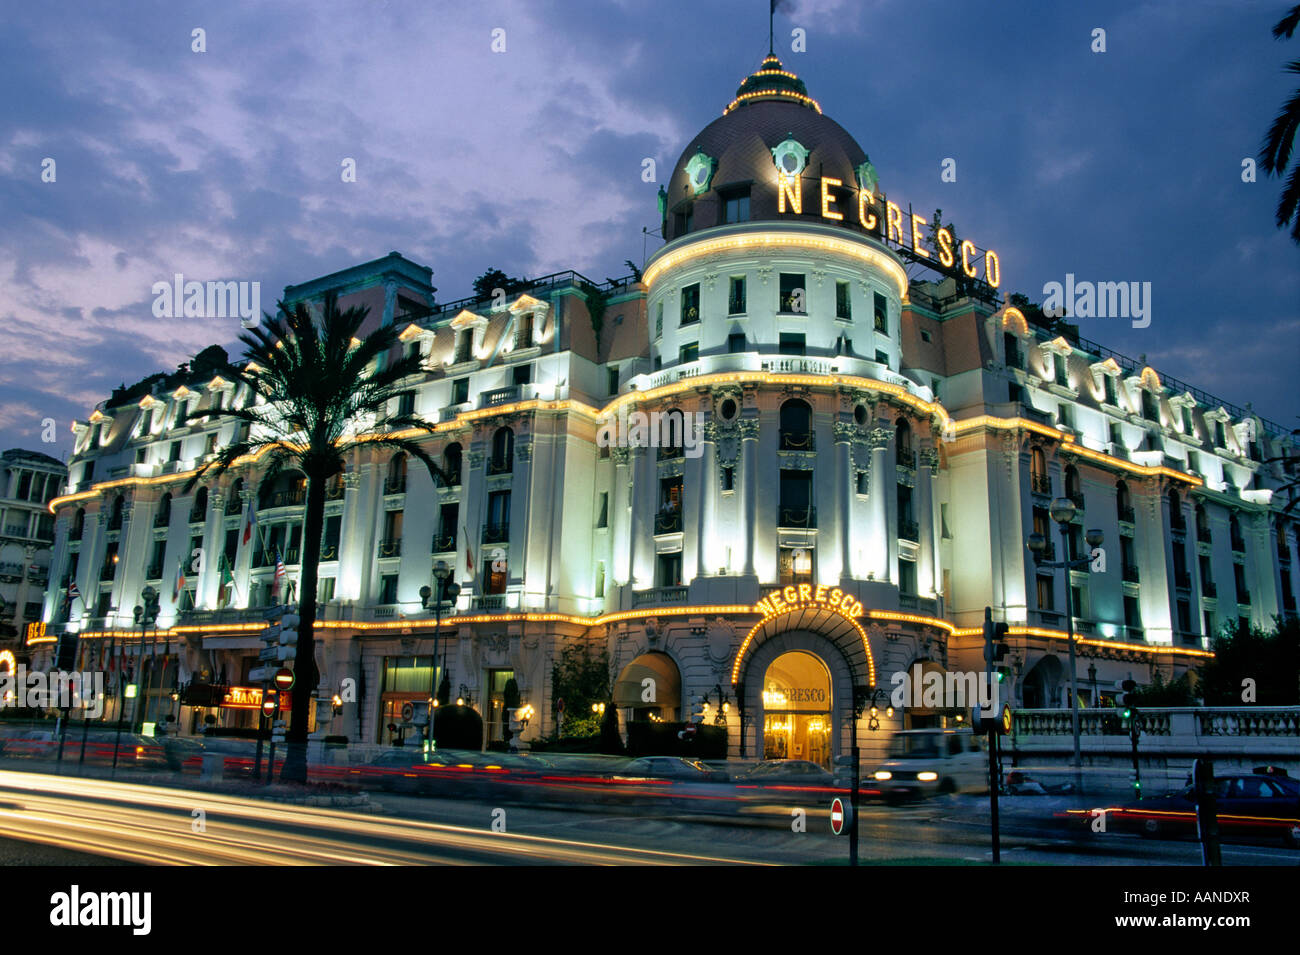 Hotel Negresco, Nice, Europe - Stock Image